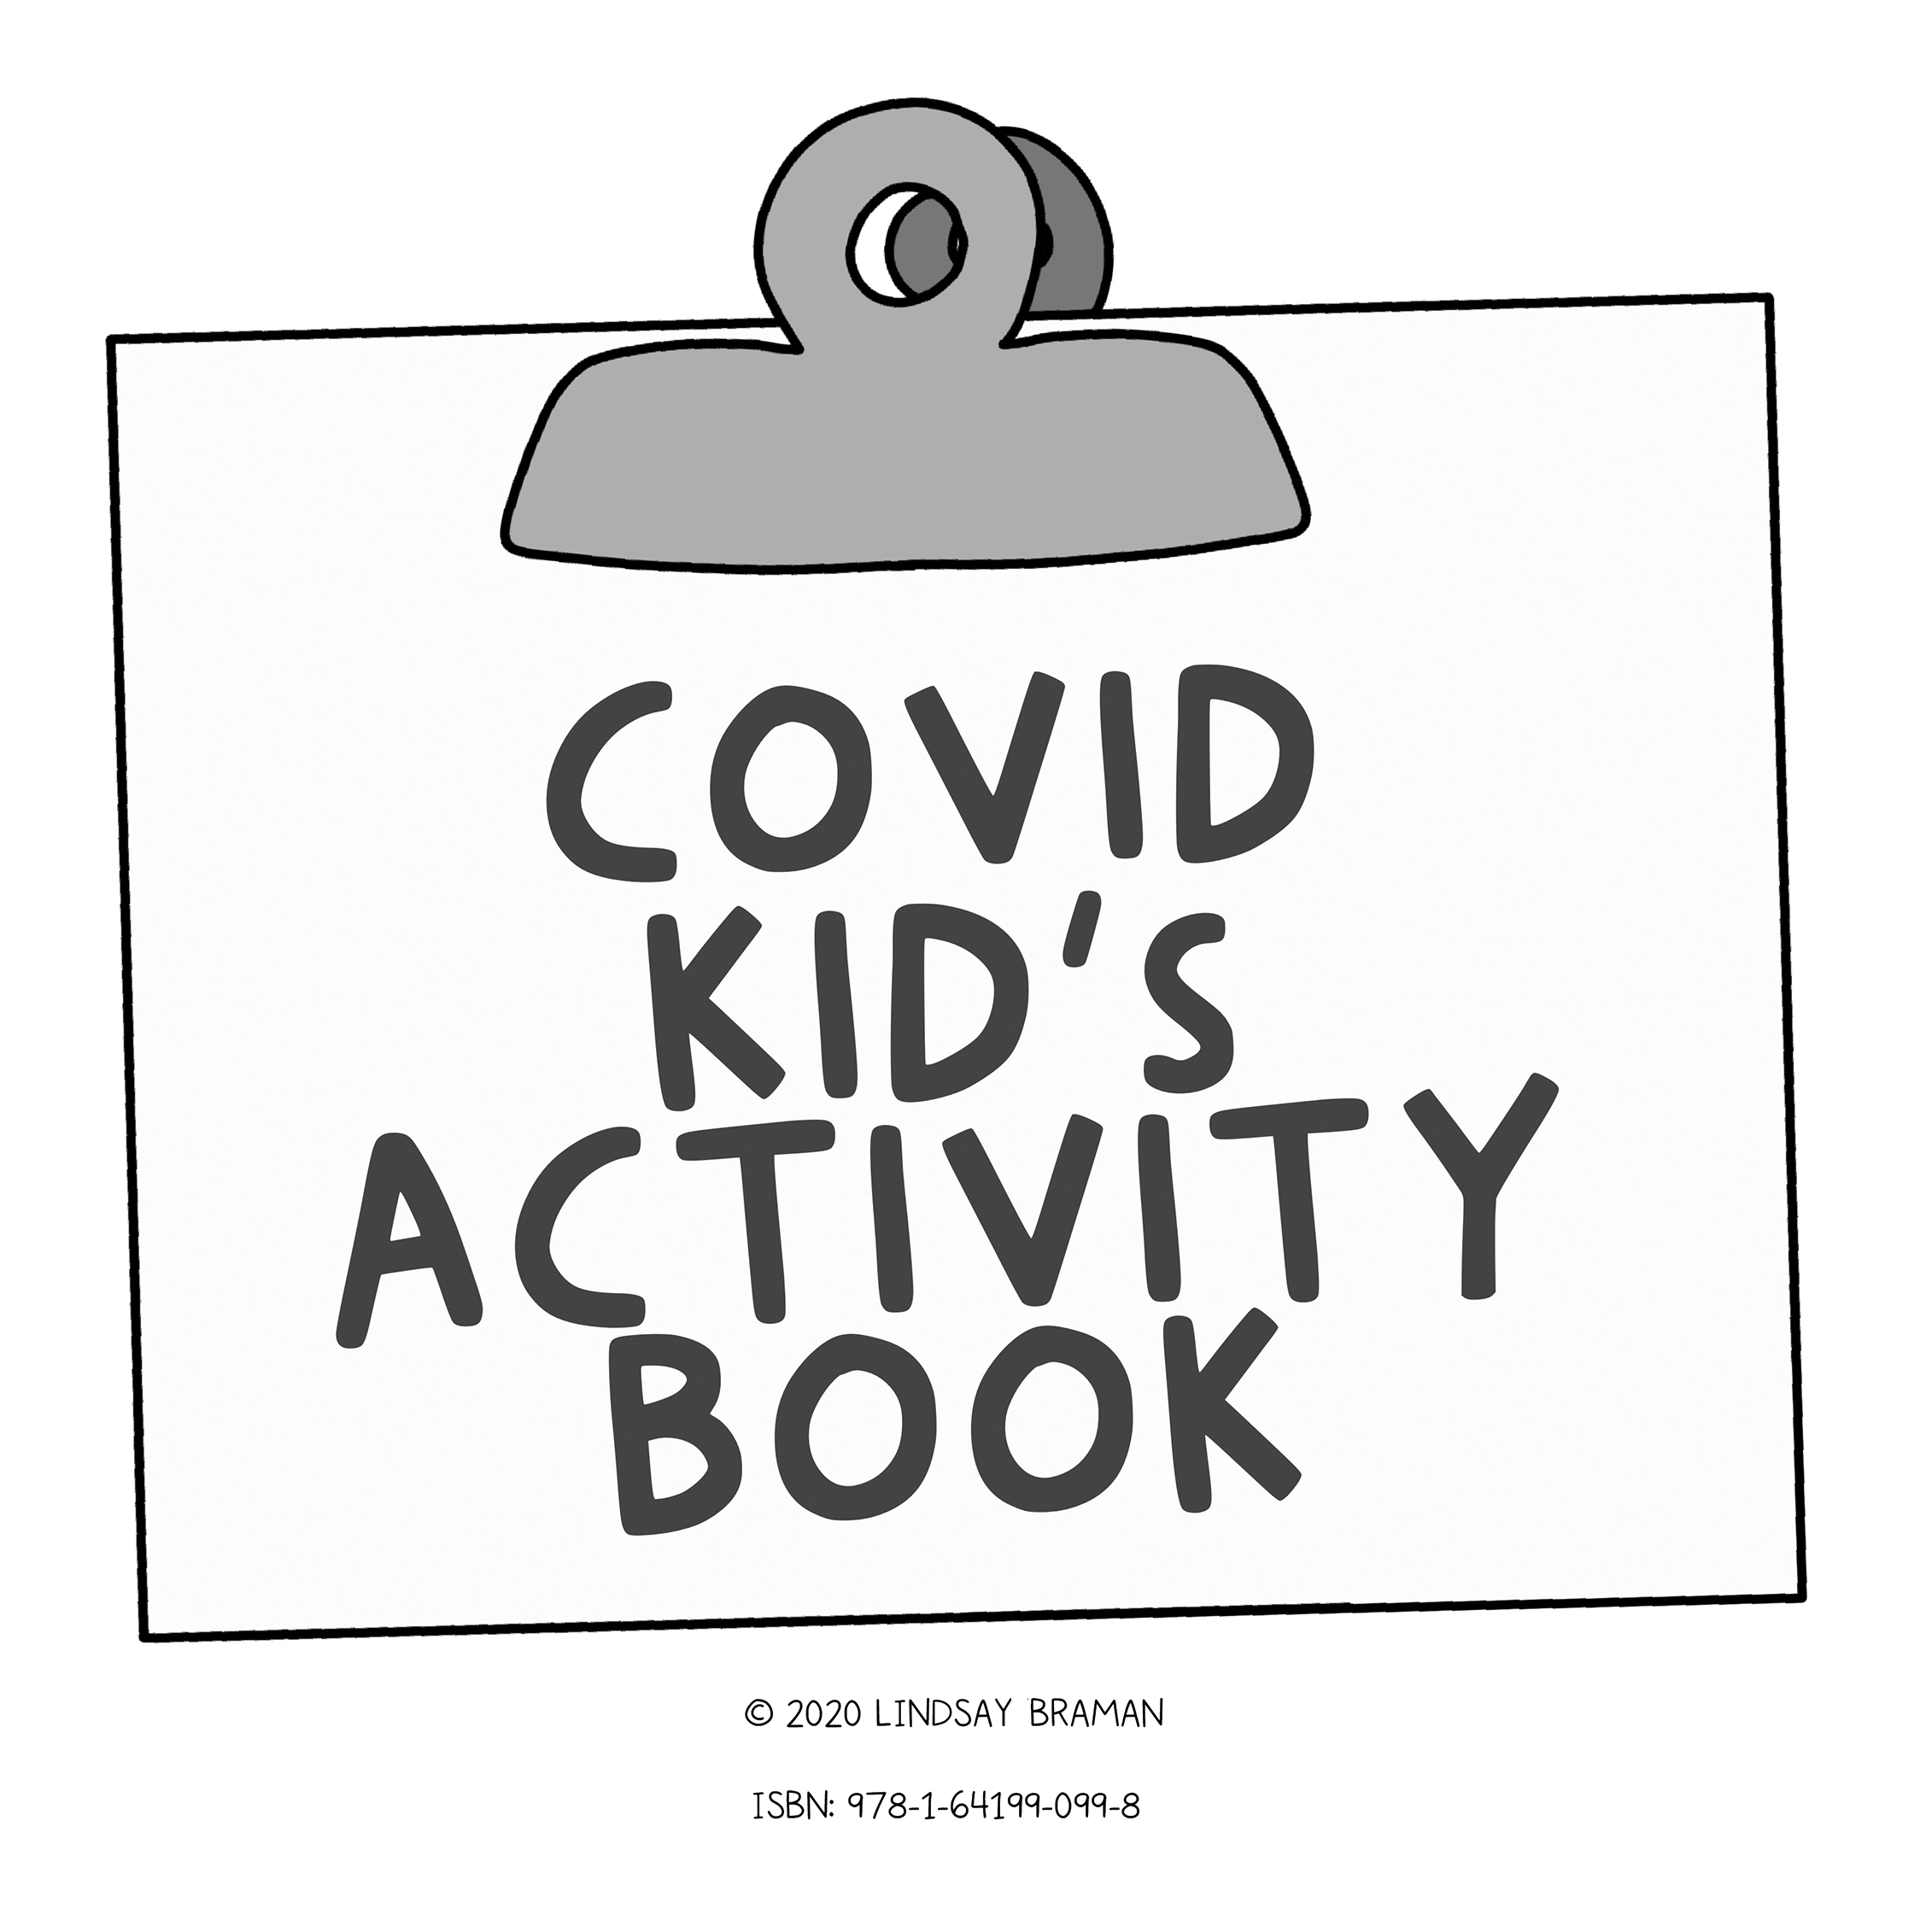 Thumbnails from a therapist-designed activity book created to help kids process COVID-19 and thrive beyond quarantine